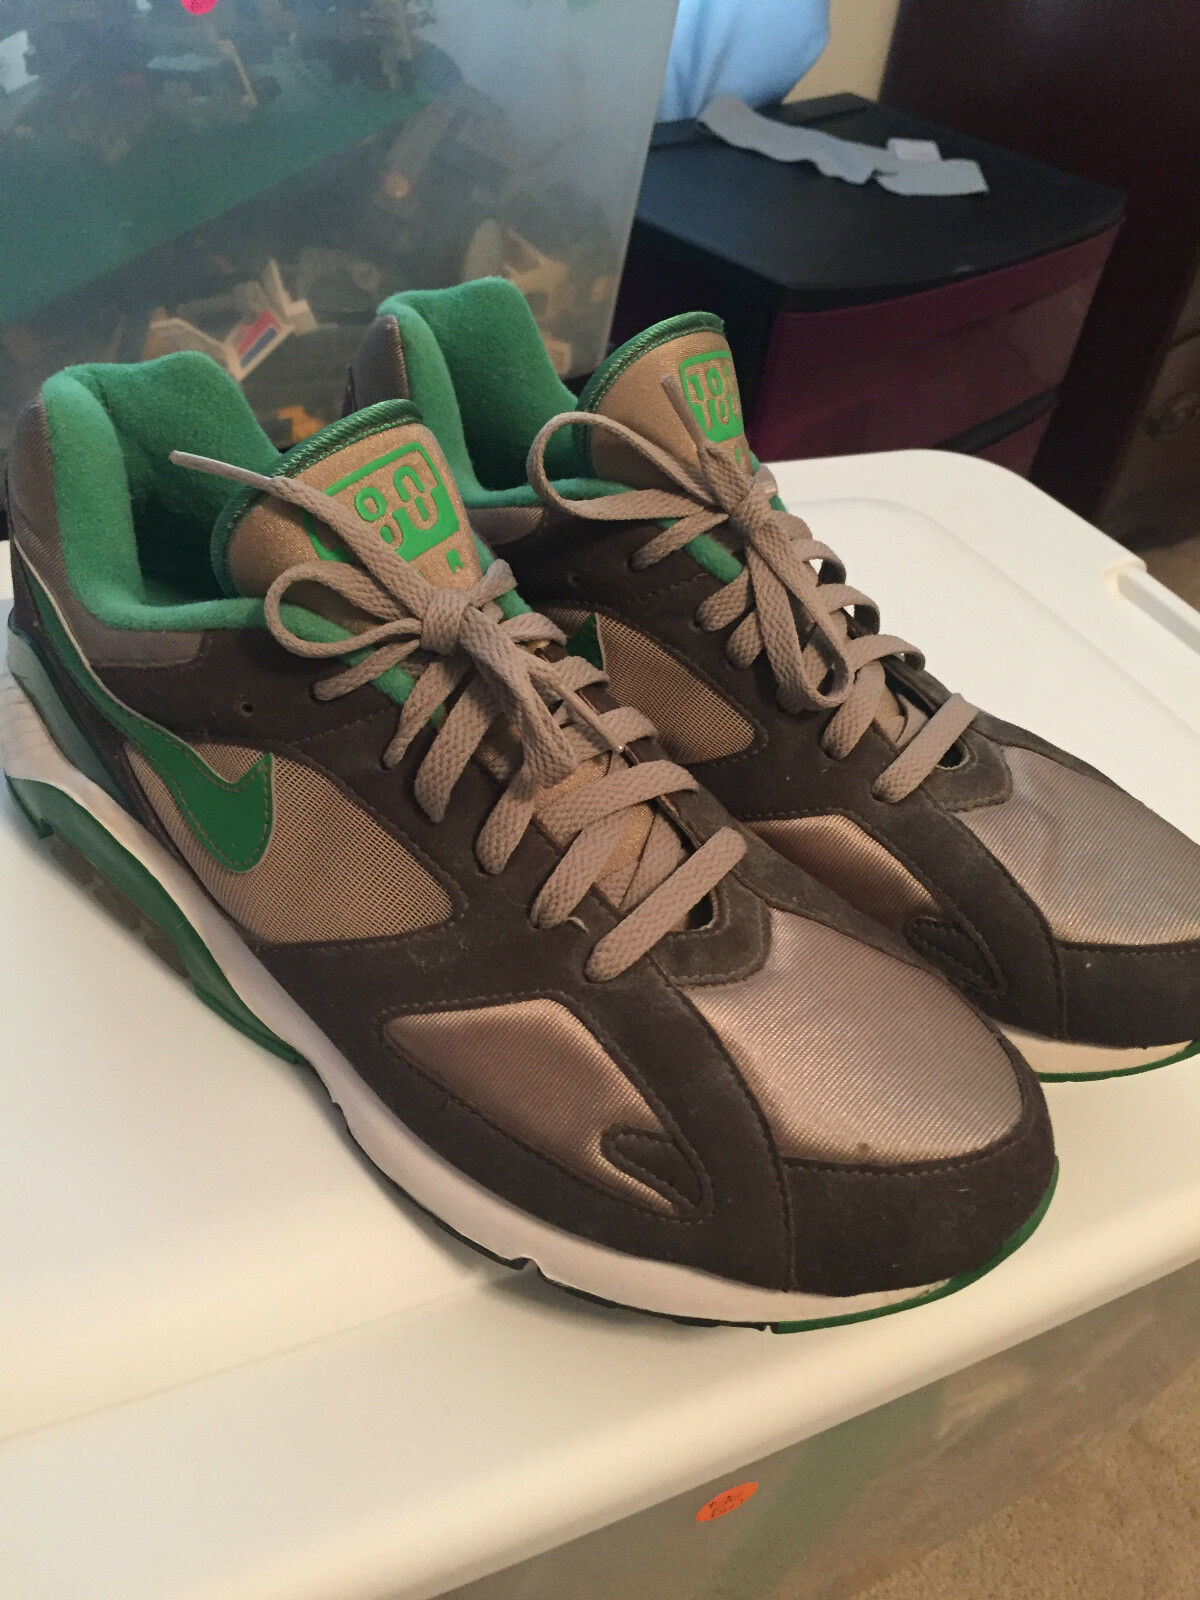 UNRELEASED NIKE AIR 180 MENS SIZE 11 SHOES OREGON COLORS PROMO The latest discount shoes for men and women